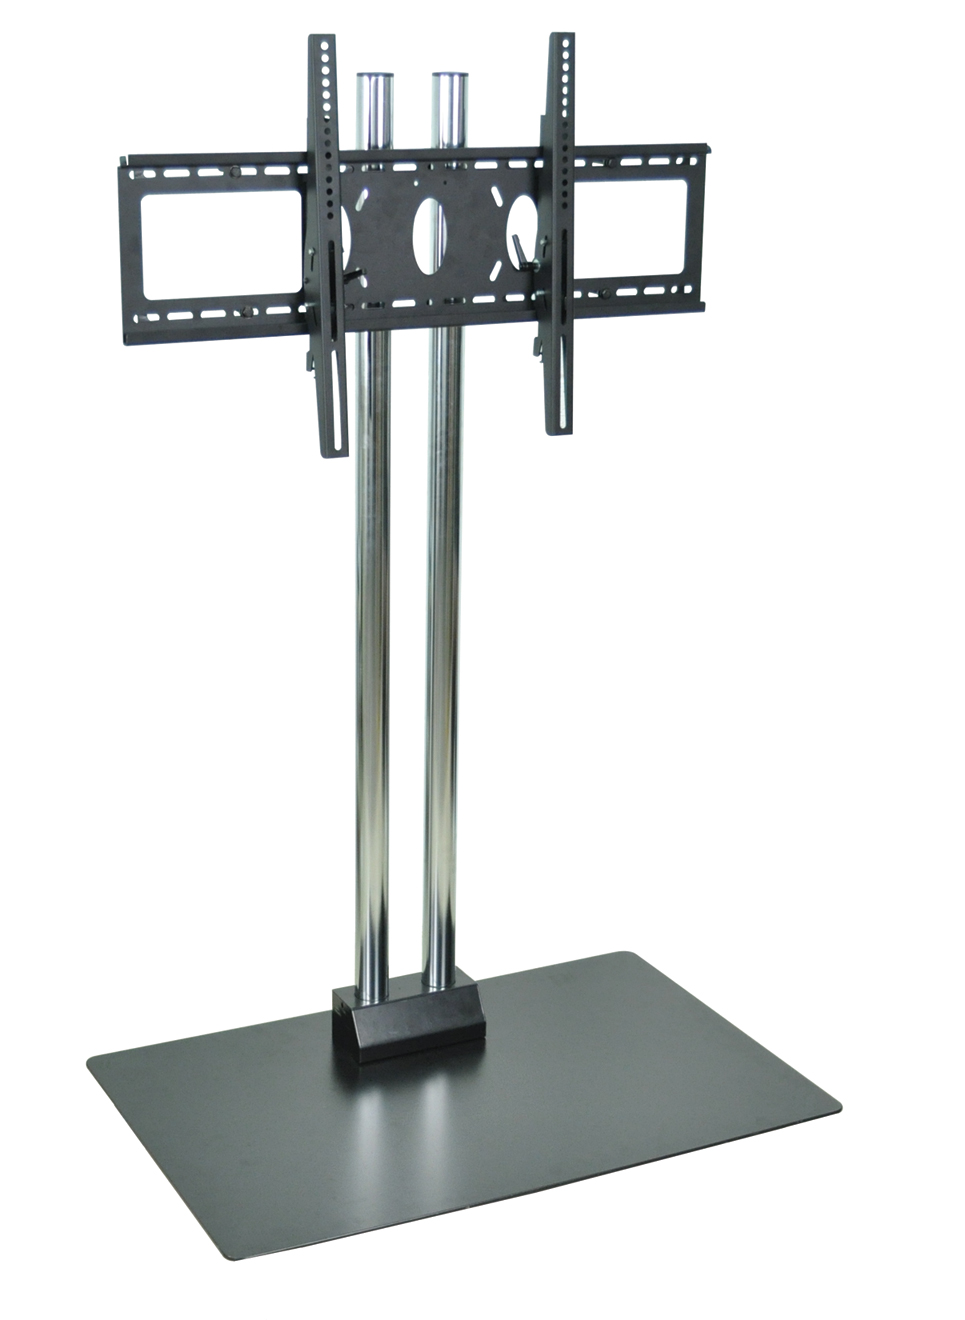 ... -Stationary-Flat-Panel-TV-Stand---Mount-60-In--H-In-TV-Mount_0_0.jpg